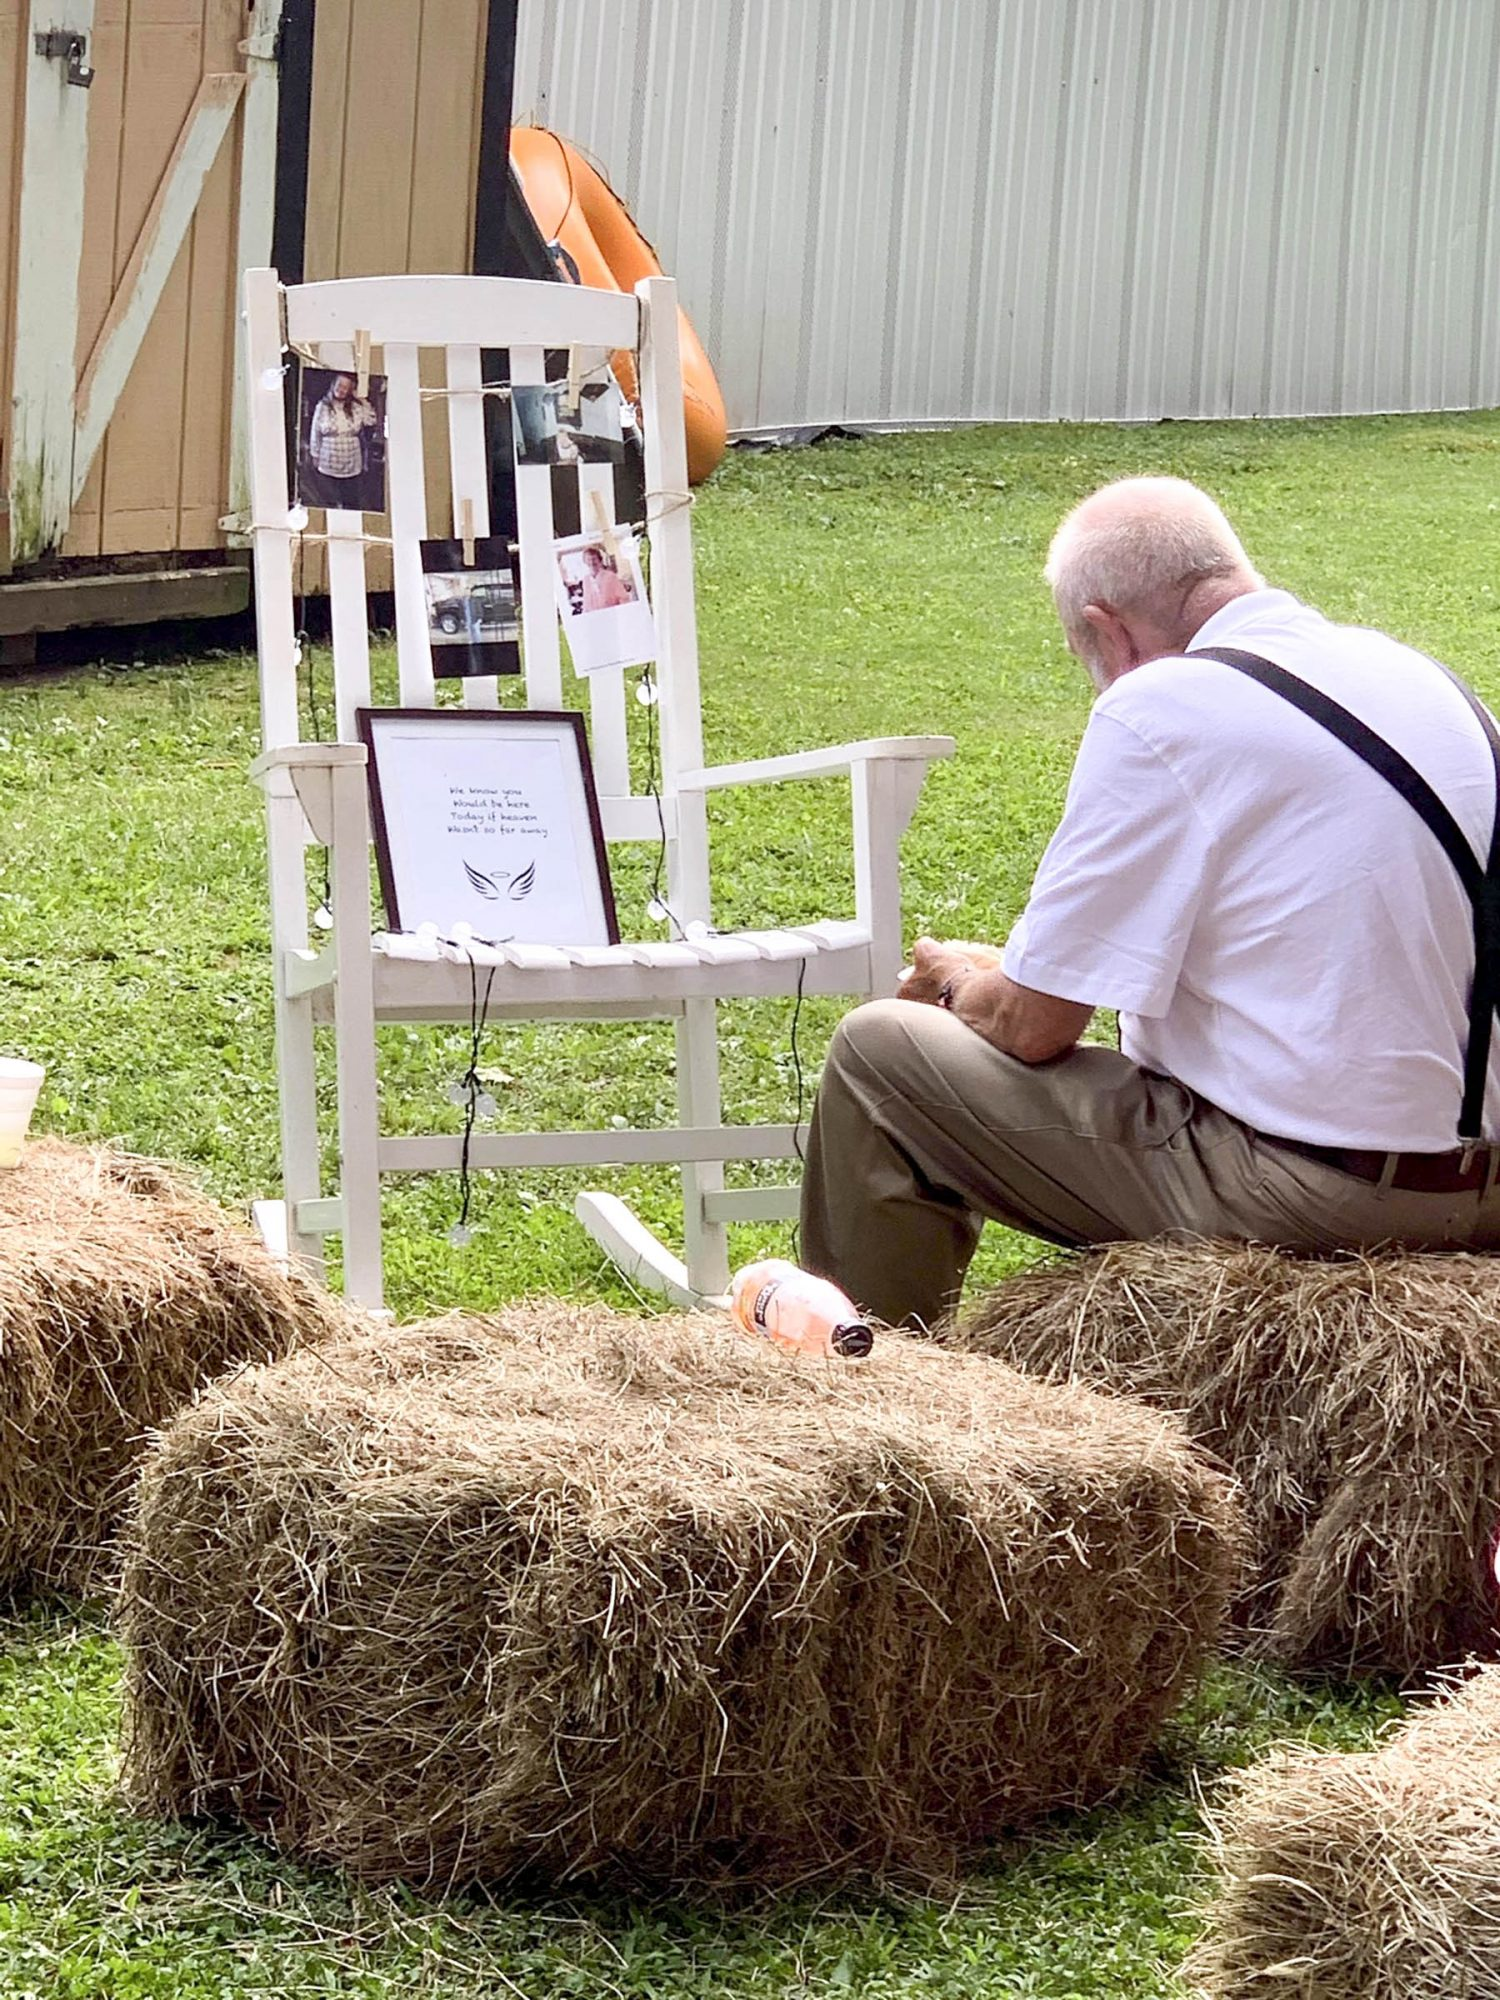 Sahrah Elswick's Grandfather Heartbreaking photo shows bride's grandfather eating alone next to memorial for late wife https://twitter.com/sahrahMichelle/status/1147735689053839360 CR: Sahrah Elswick/Twitter